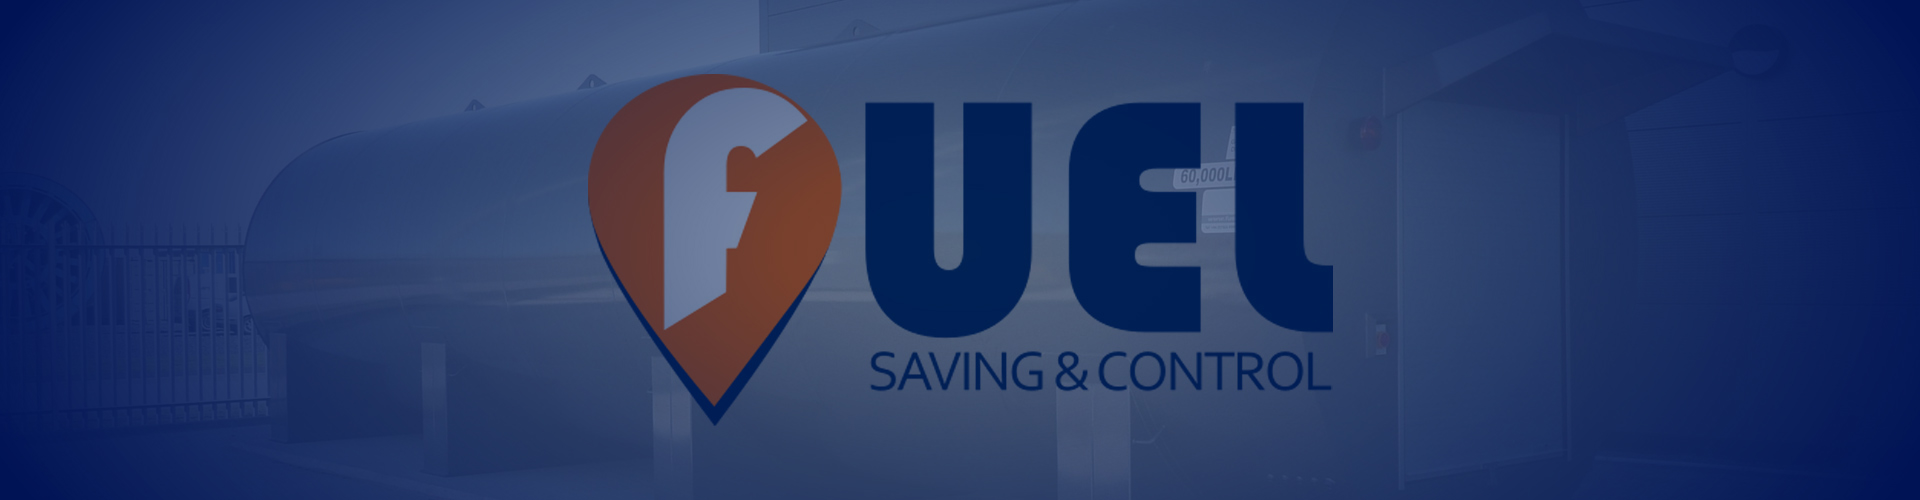 Fuel Monitoring System, Anti Fuel Theft Device | Tecnocompany